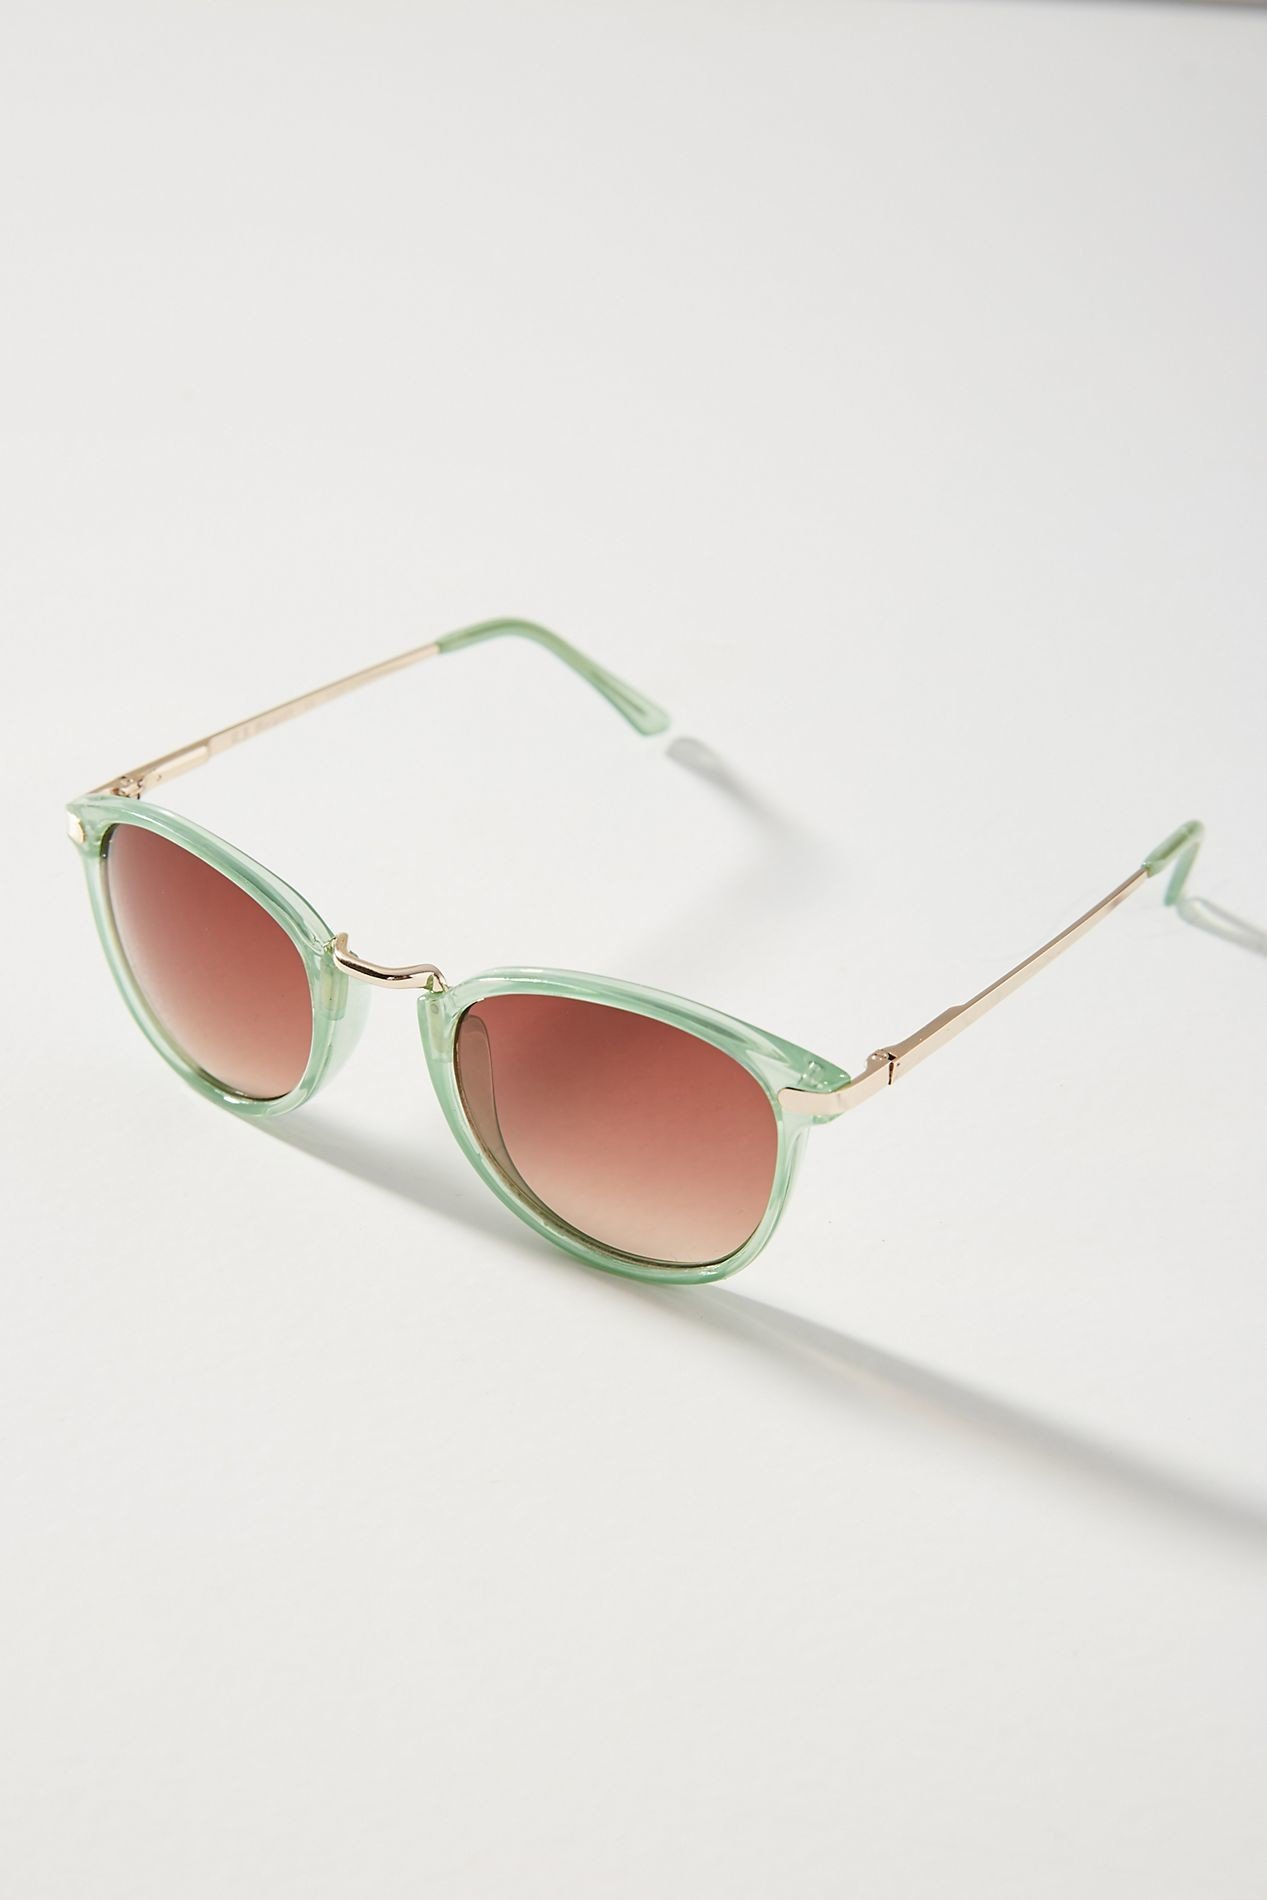 Spring Travel Style + Design Summer Travel Travel Shop eyewear vision care sunglasses accessory glasses spectacles product design product rectangle enamel